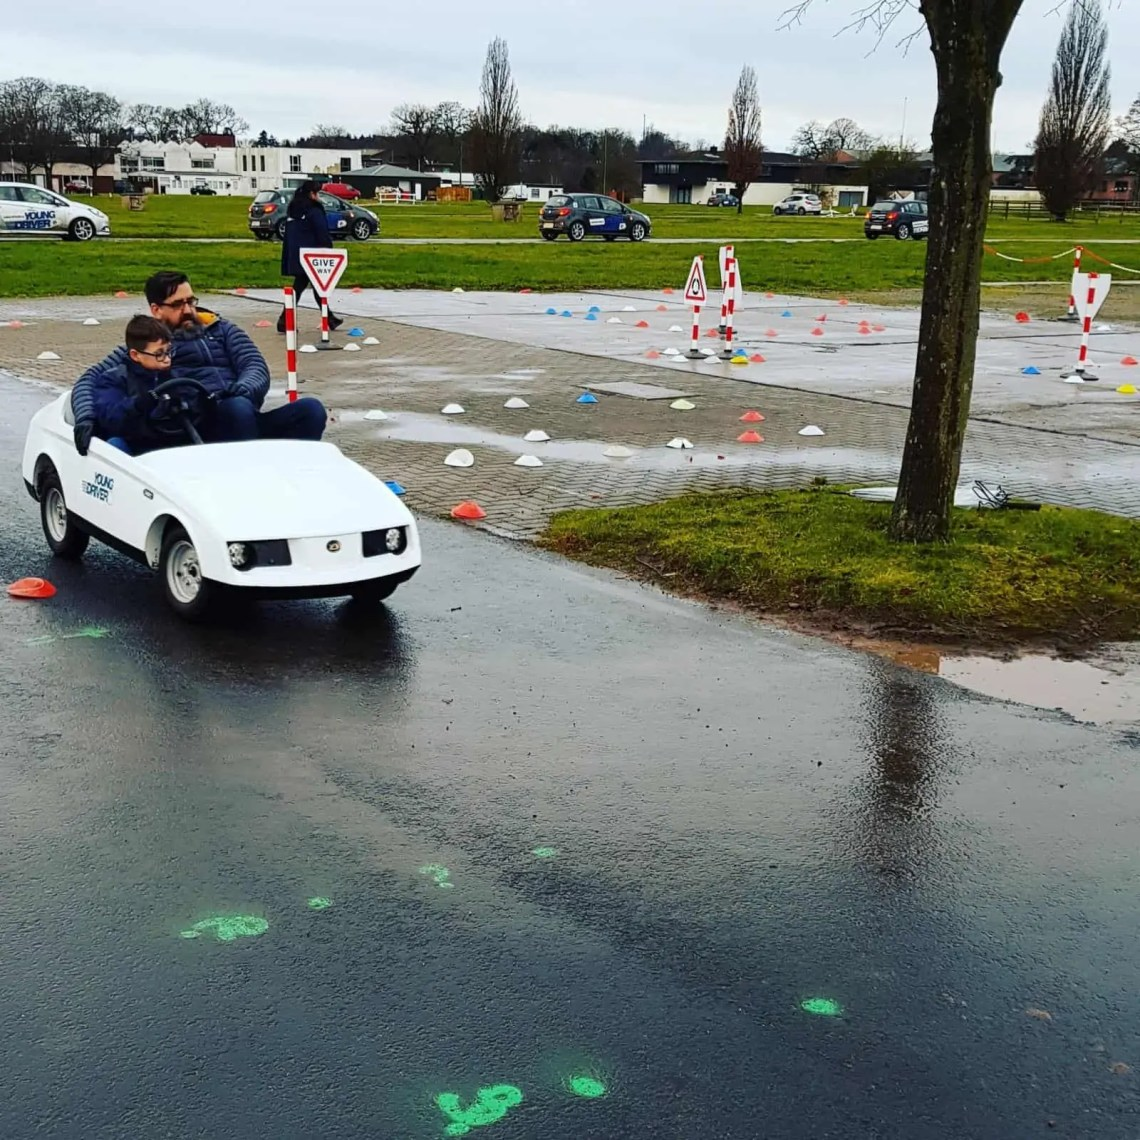 Driving Lesson at 8 years old